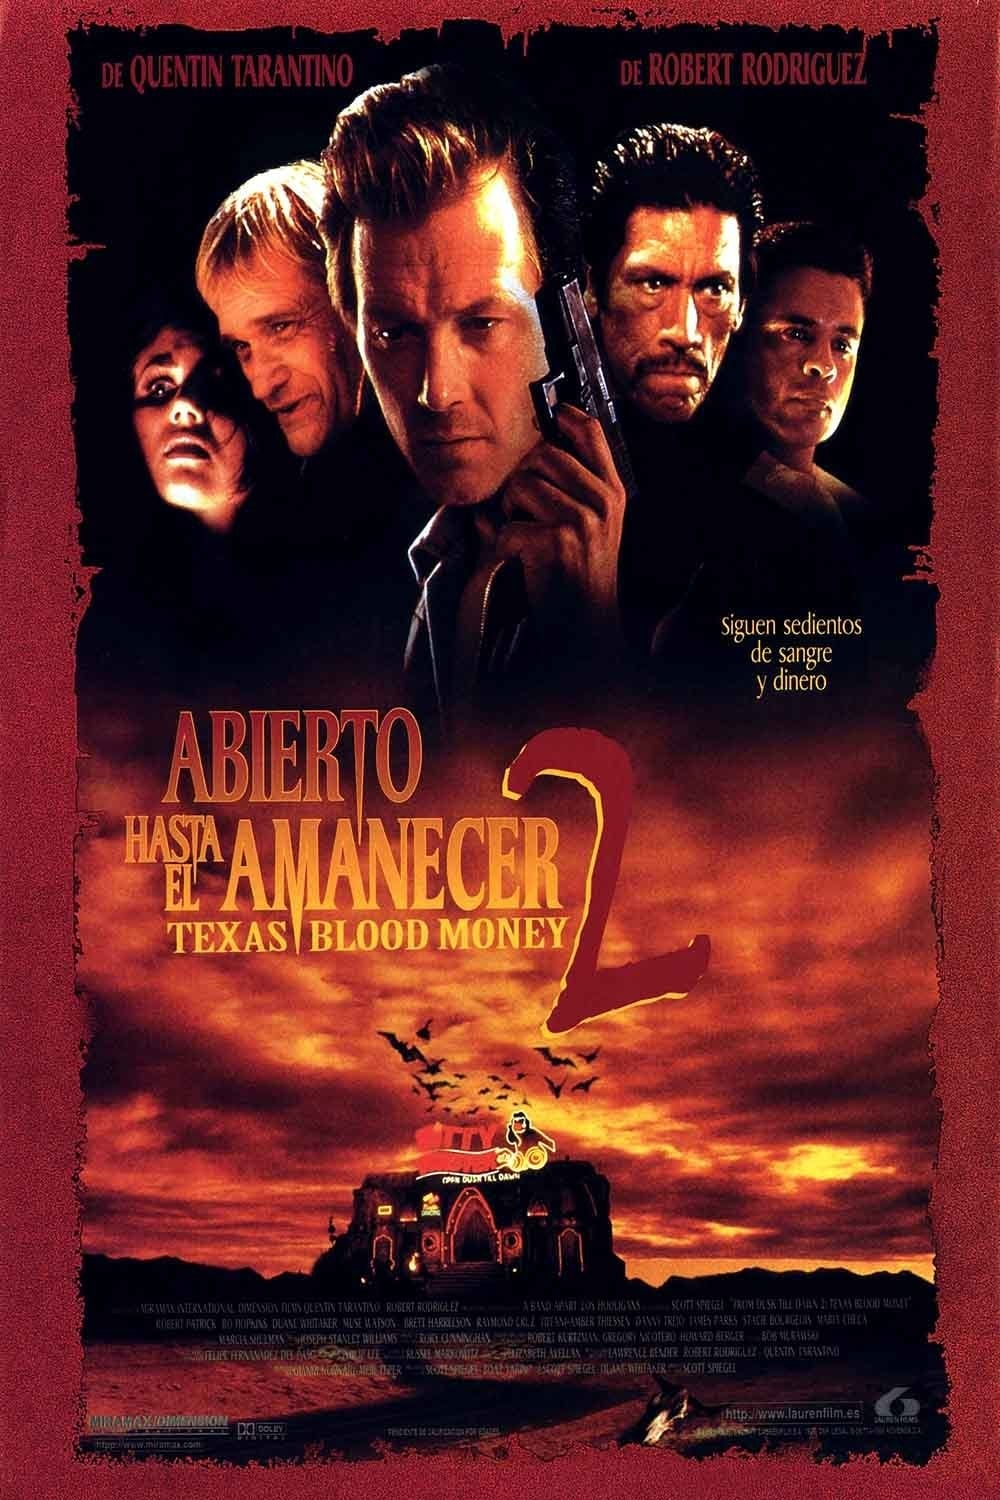 Póster Abierto hasta el amanecer 2: Texas Blood Money